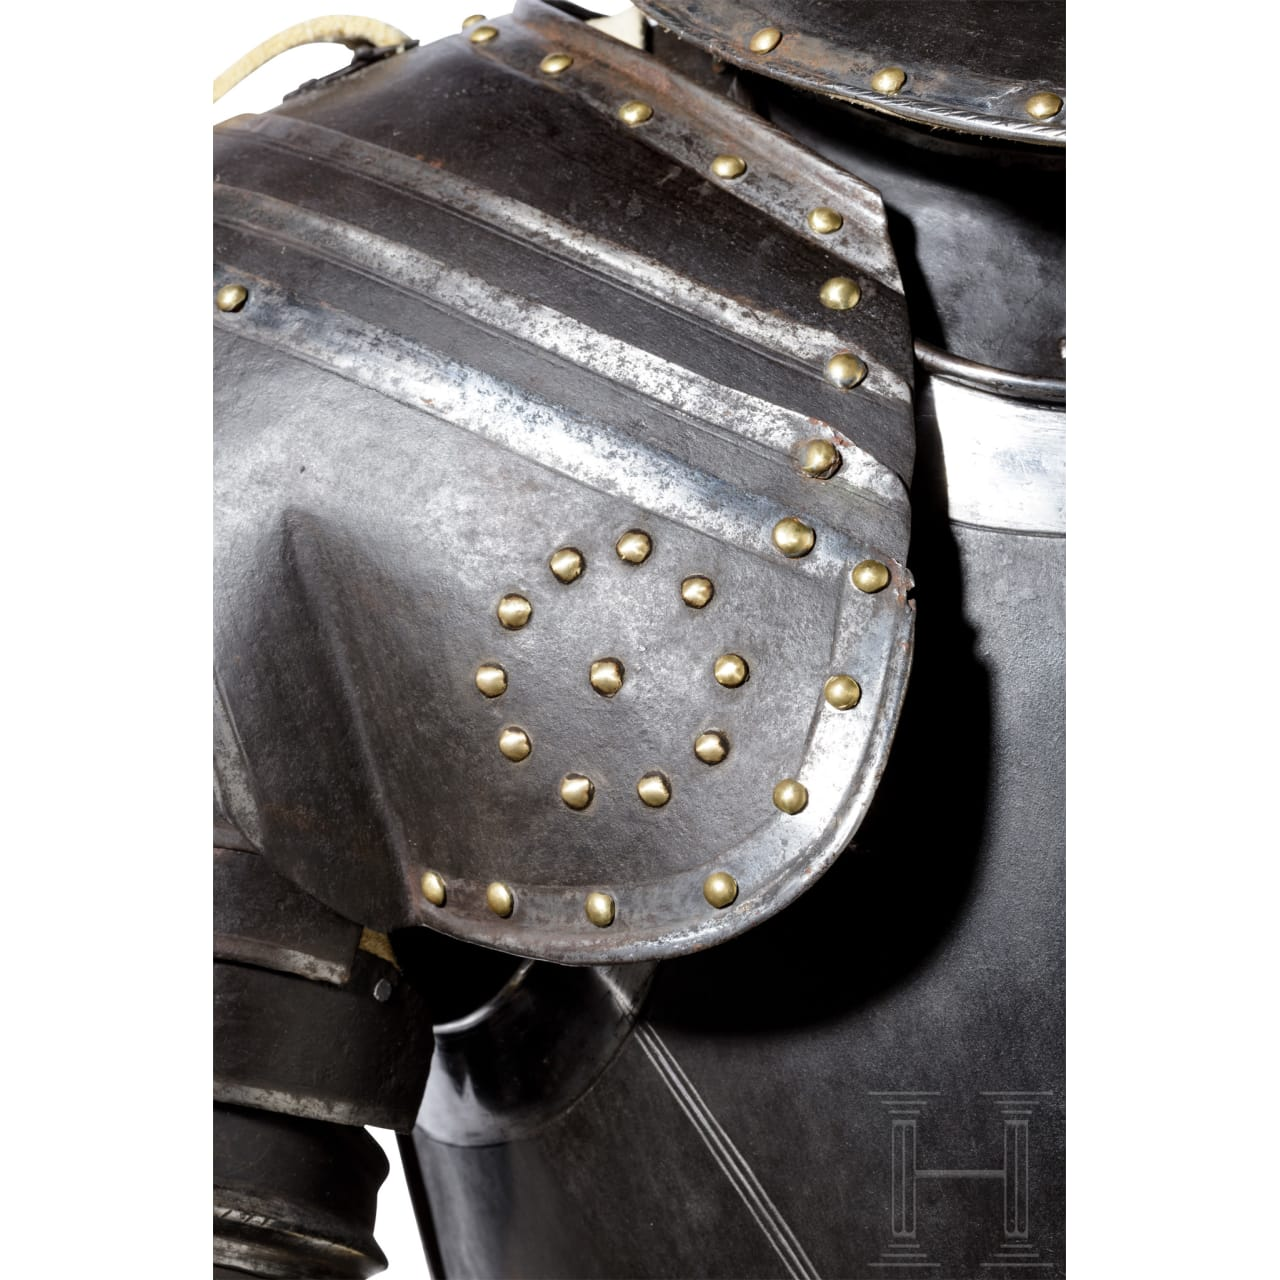 A French cuirassier's black and white armour, circa 1620